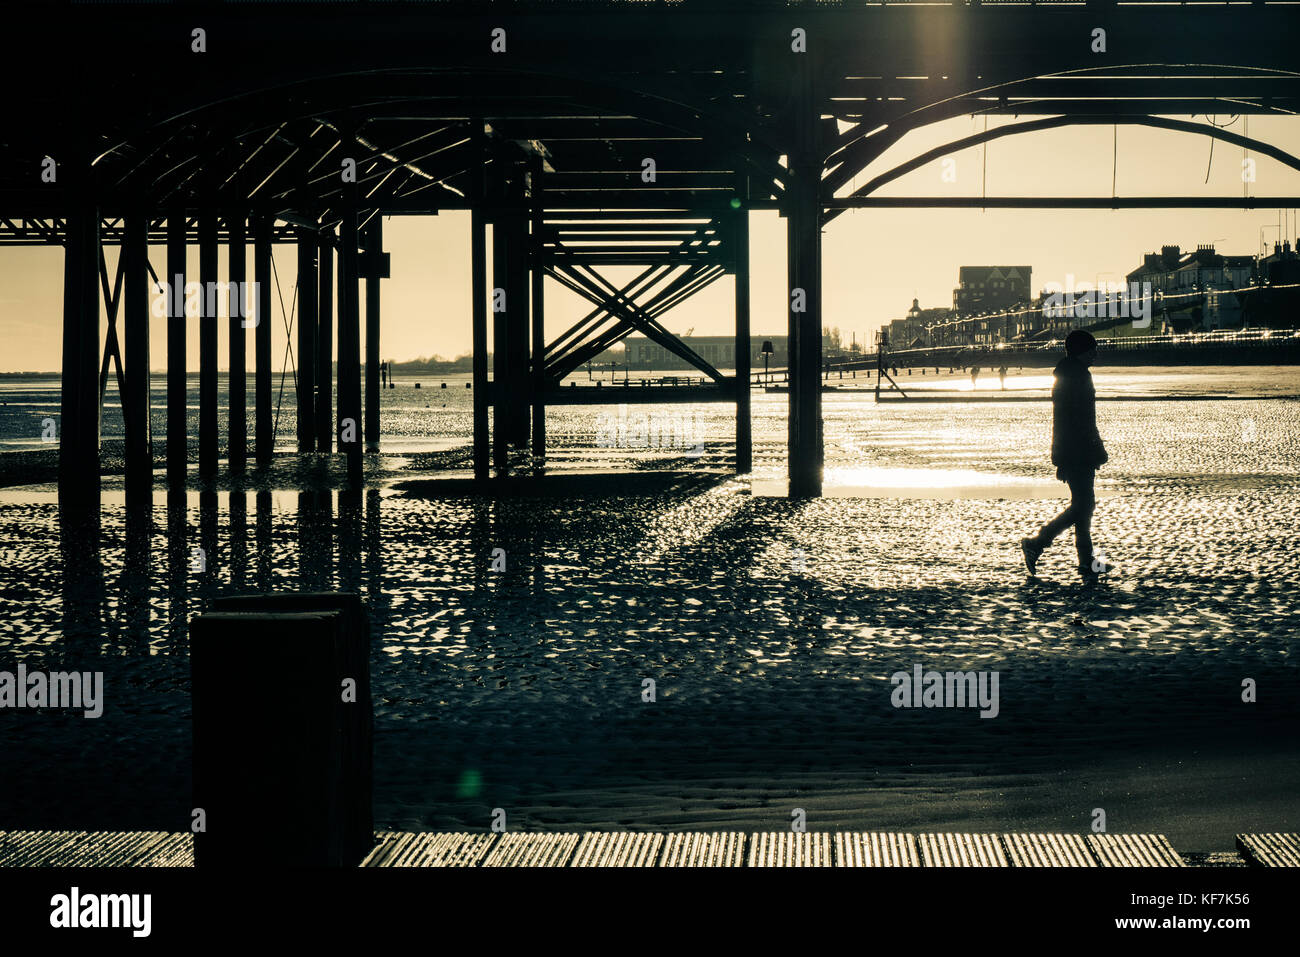 Atmospheric Cleethorpes Pier - Stock Image